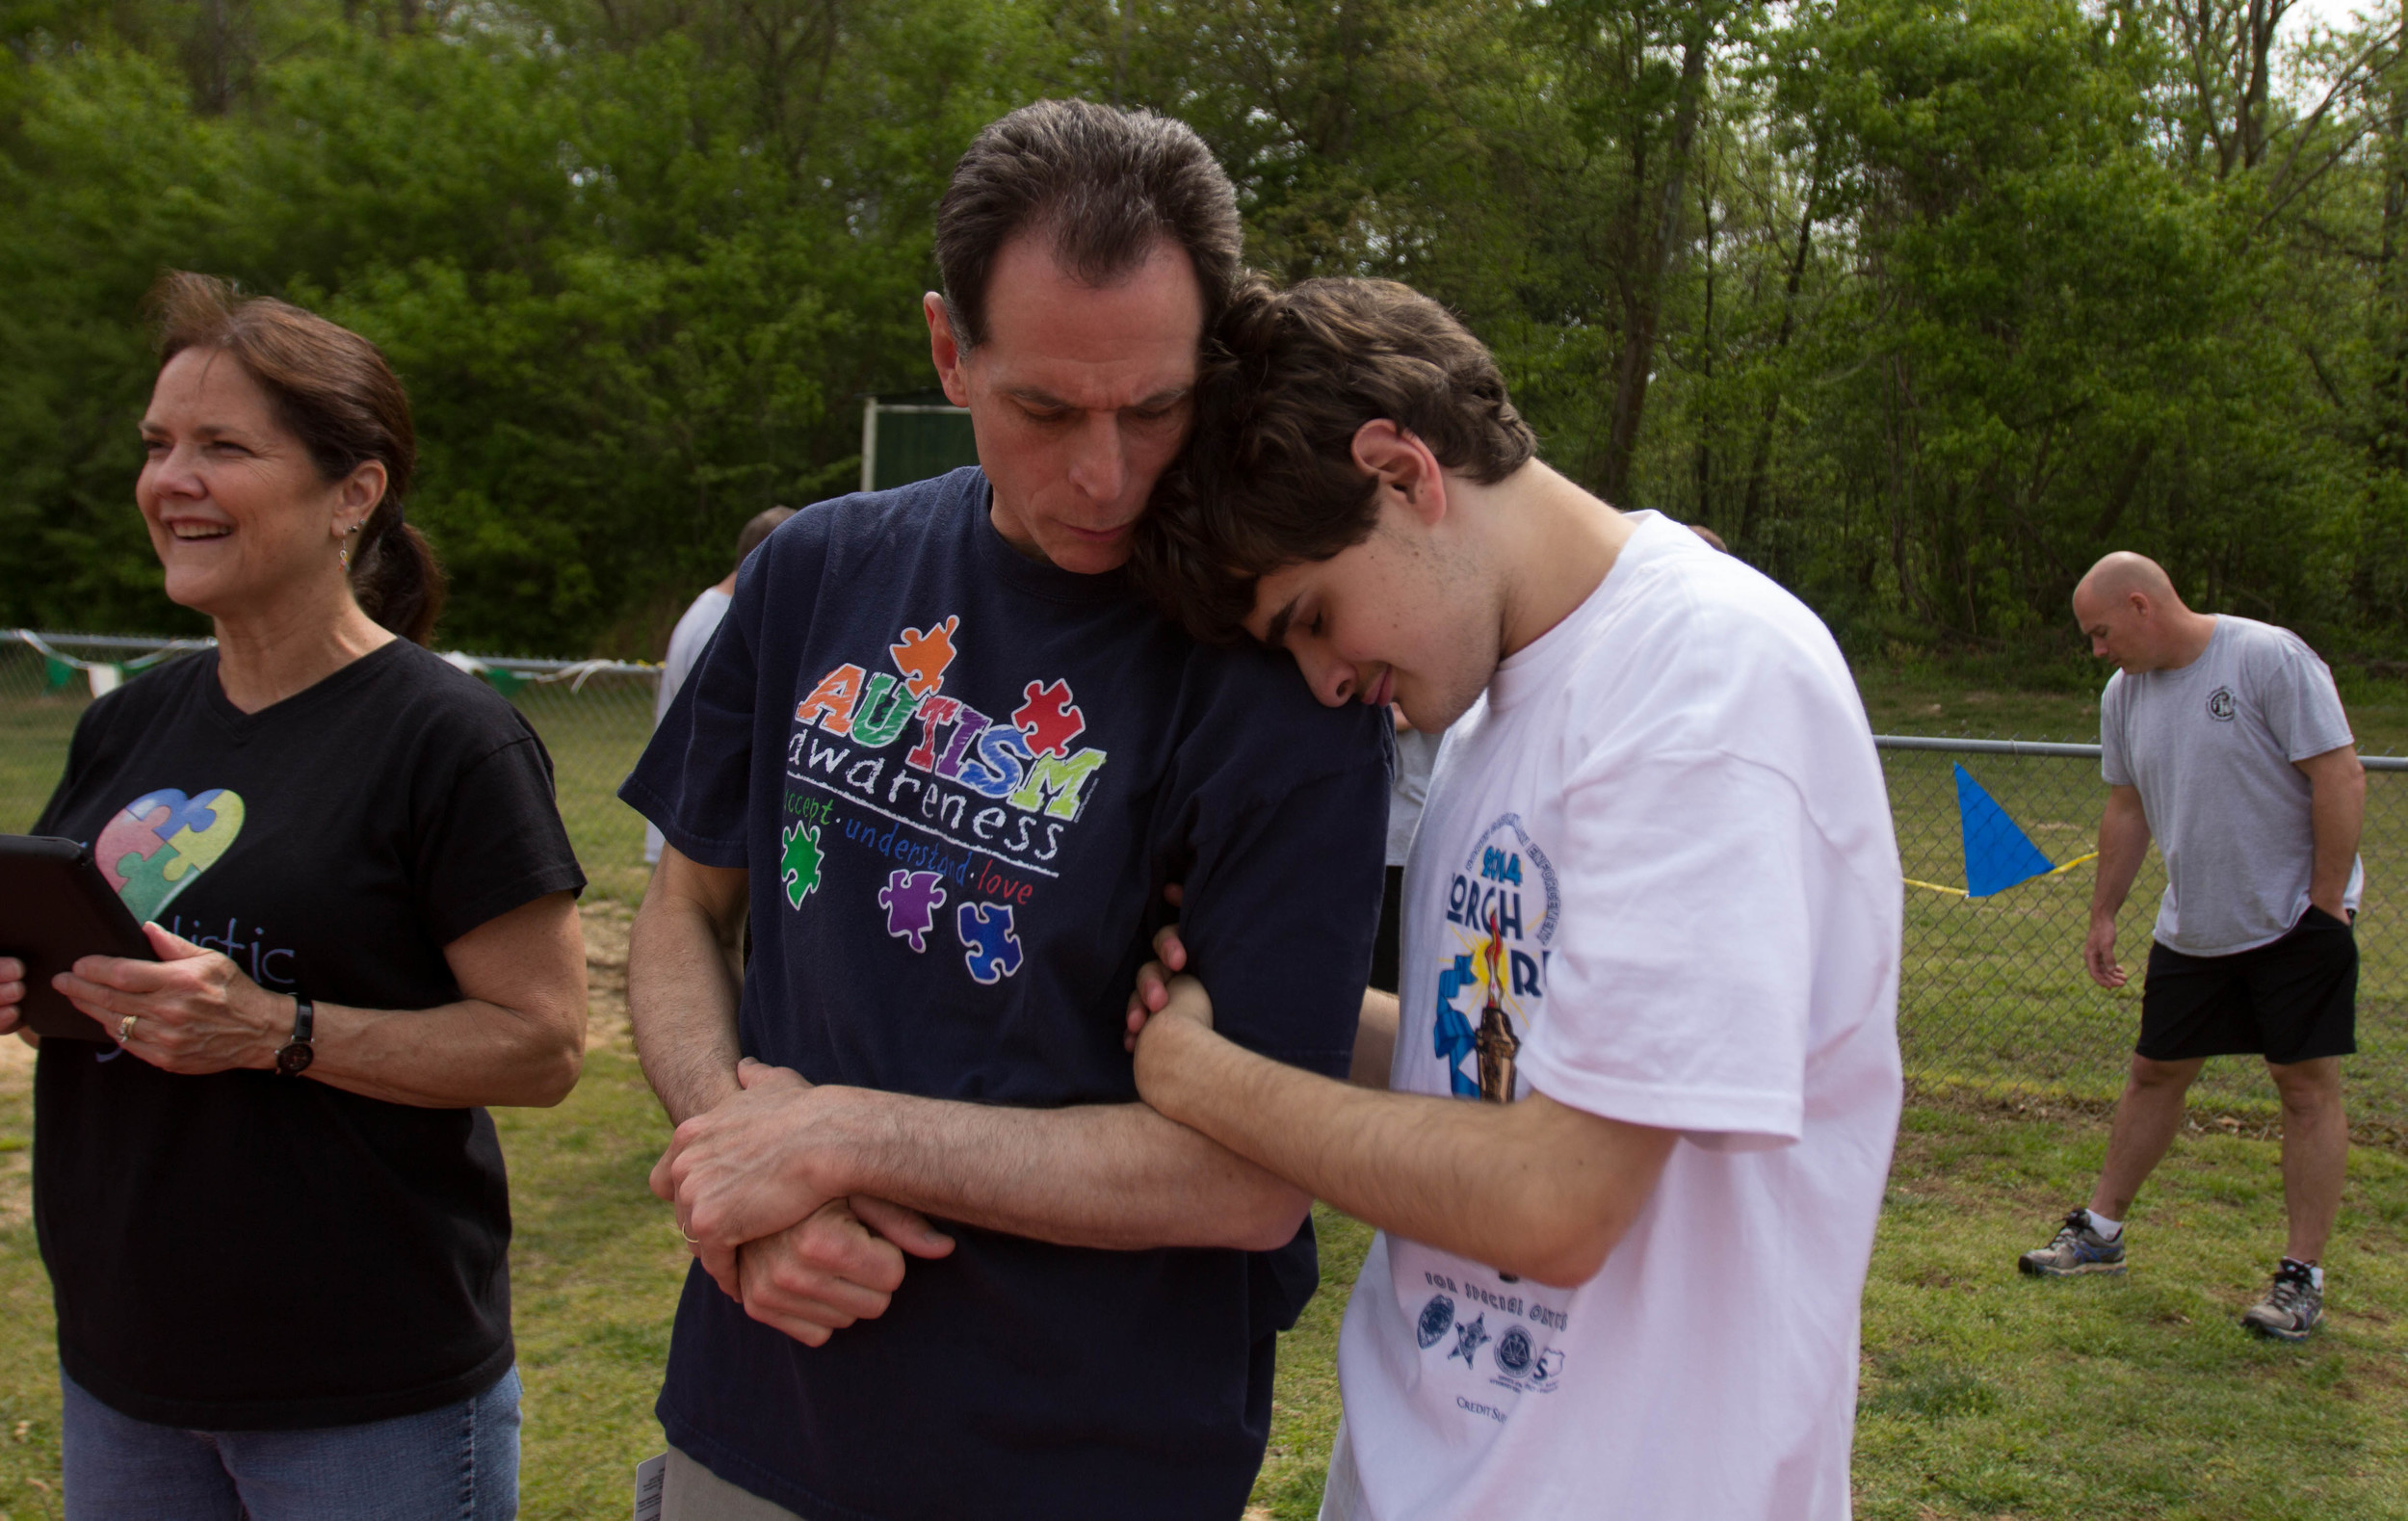 """""""Everything was fine. He was right on cue with everything. He even had some words,"""" said Vicki Gurganus. """"But then at about 18 months, he stopped paying attention when we said his name.""""  Her son, Zackary """"Zack"""" Gurganus, now 16, was diagnosed with autism at 22 months.  Autism is a developmental disorder that is usually diagnosed within the first five years of a child's life. It affects the neurological development of social and communication skills, but it is still unknown whether the autism is caused by genetics or early childhood environment. Regardless of its cause, autism is life changing.  While waiting for the Special Olympics Spring Games to begin, Zack clings to his father, Kevin Gurganus."""